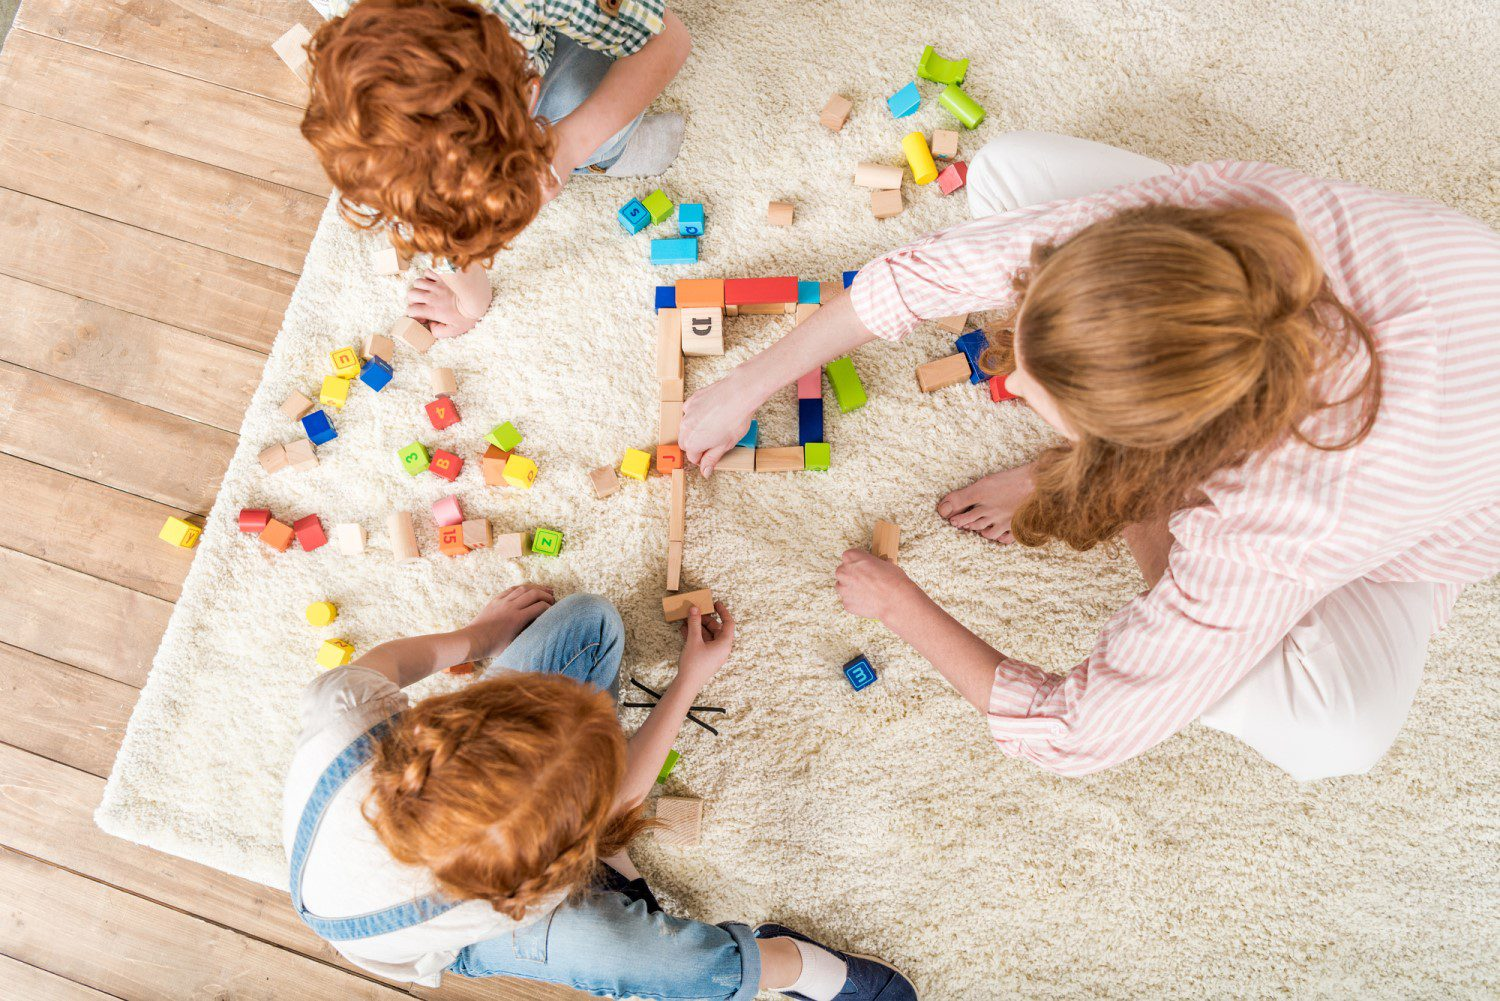 Three kids playing with toys on an area rug